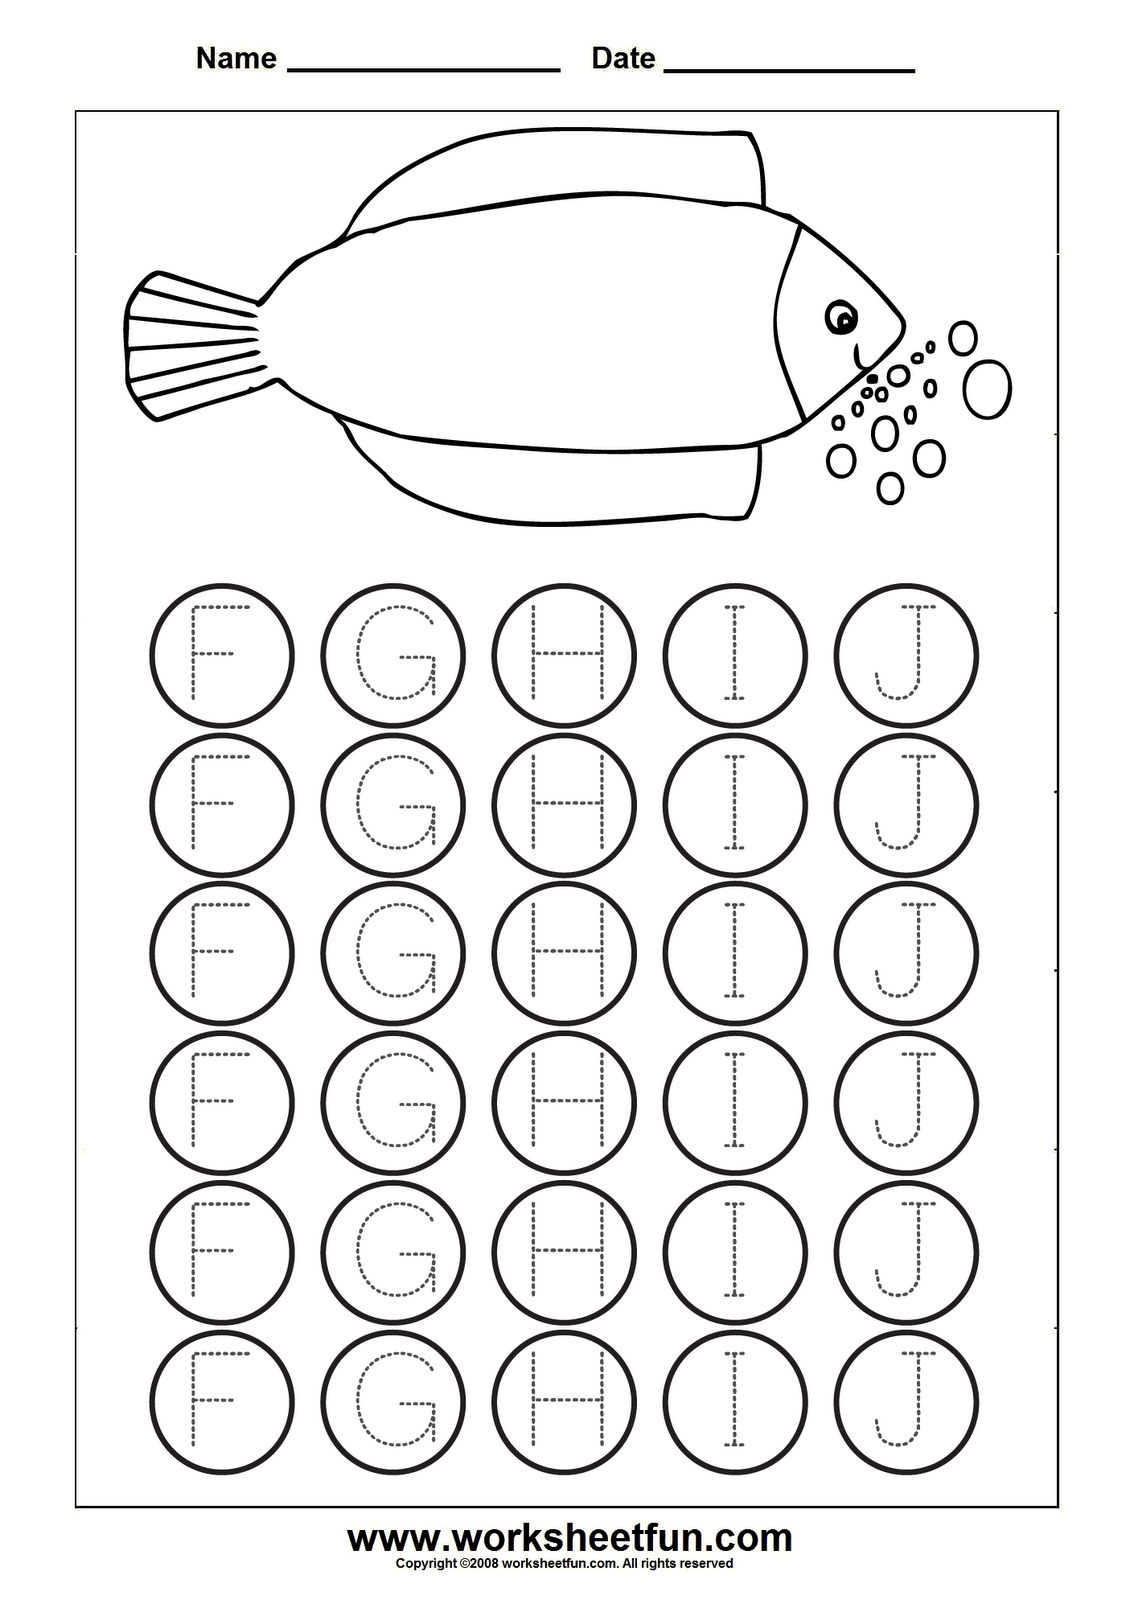 Image Detail For Letter Tracing Worksheets For